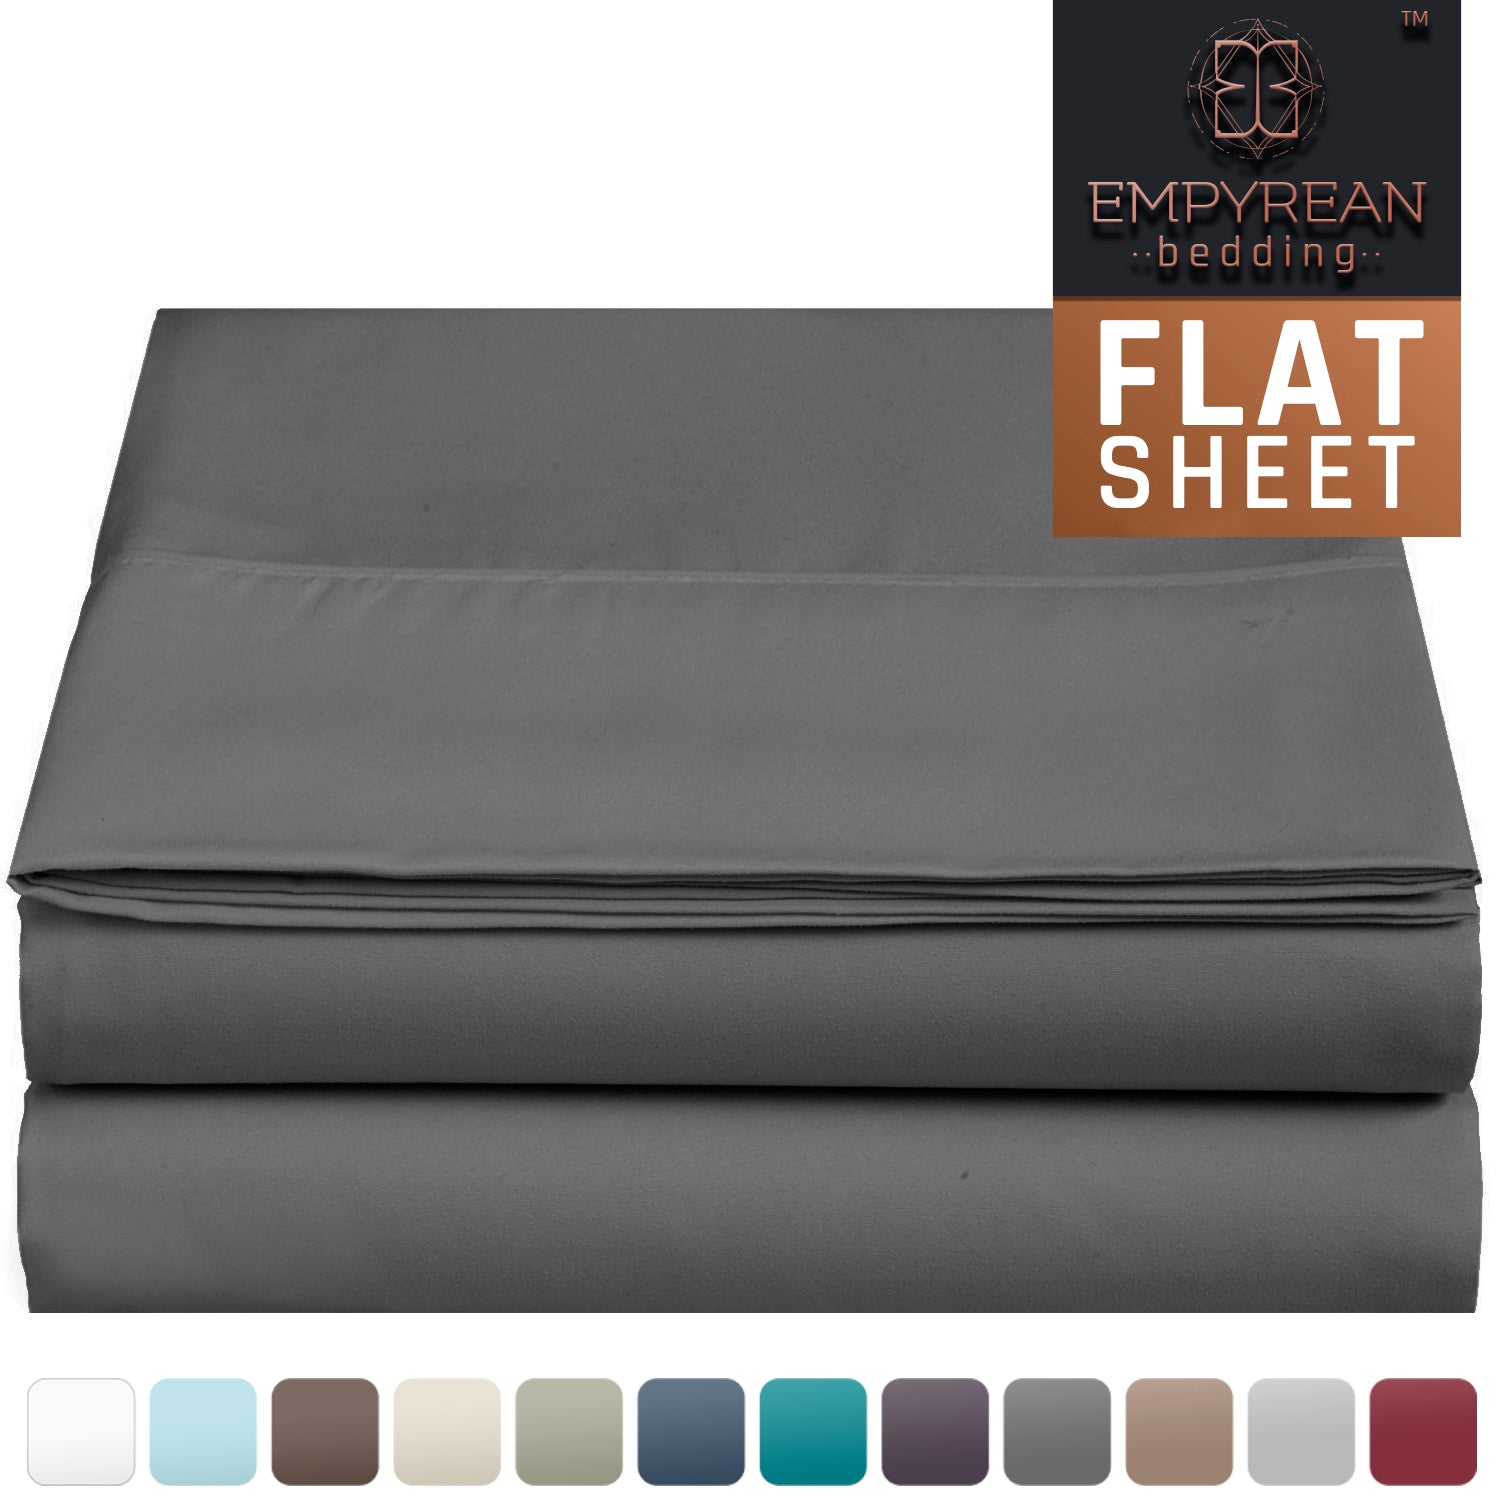 Empyrean Premium Flat Sheets